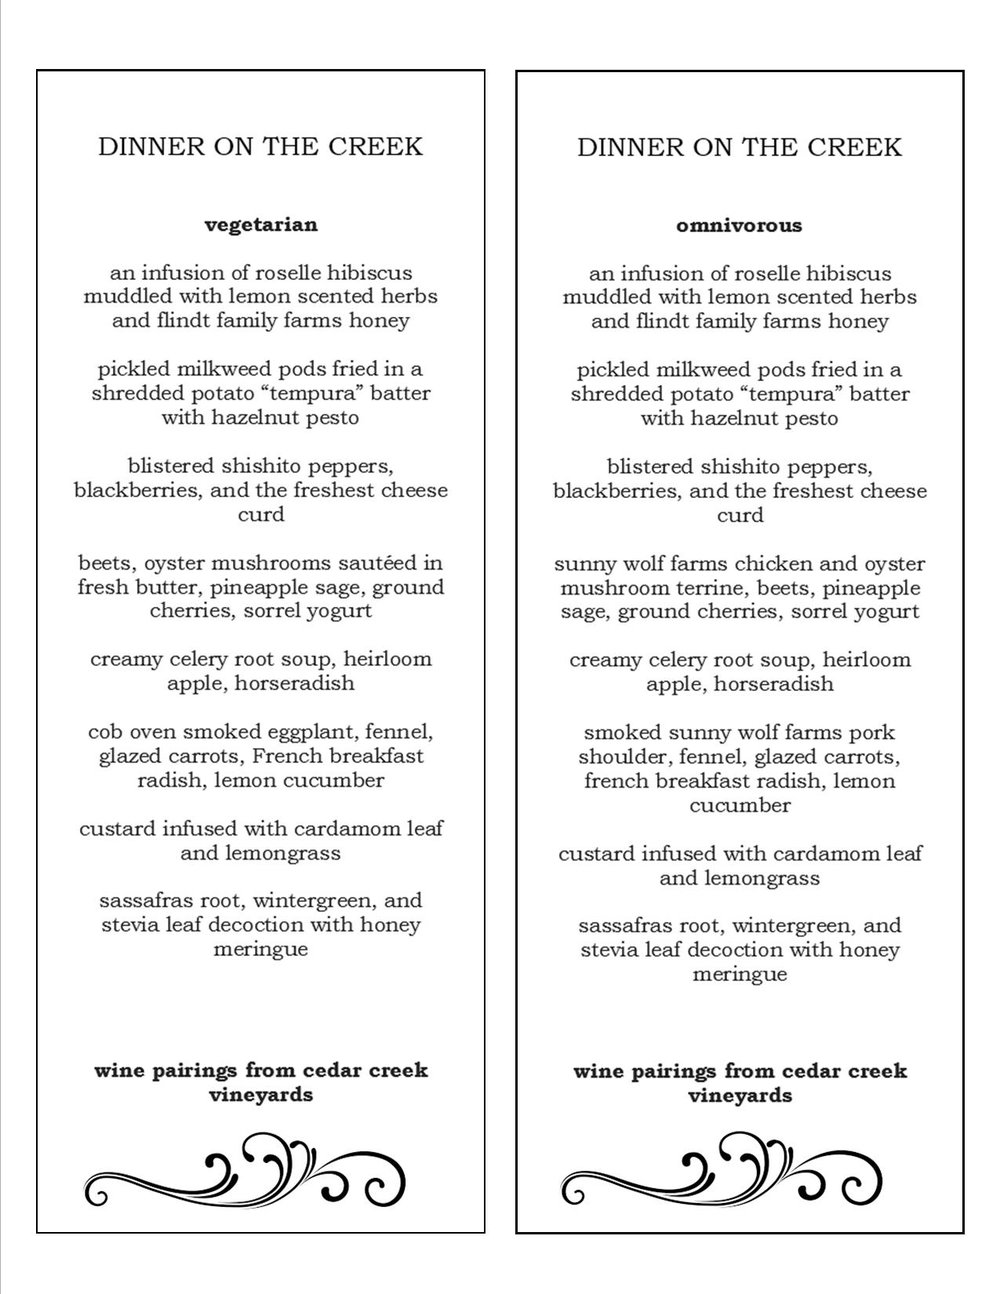 Dinner on the Creek Menu